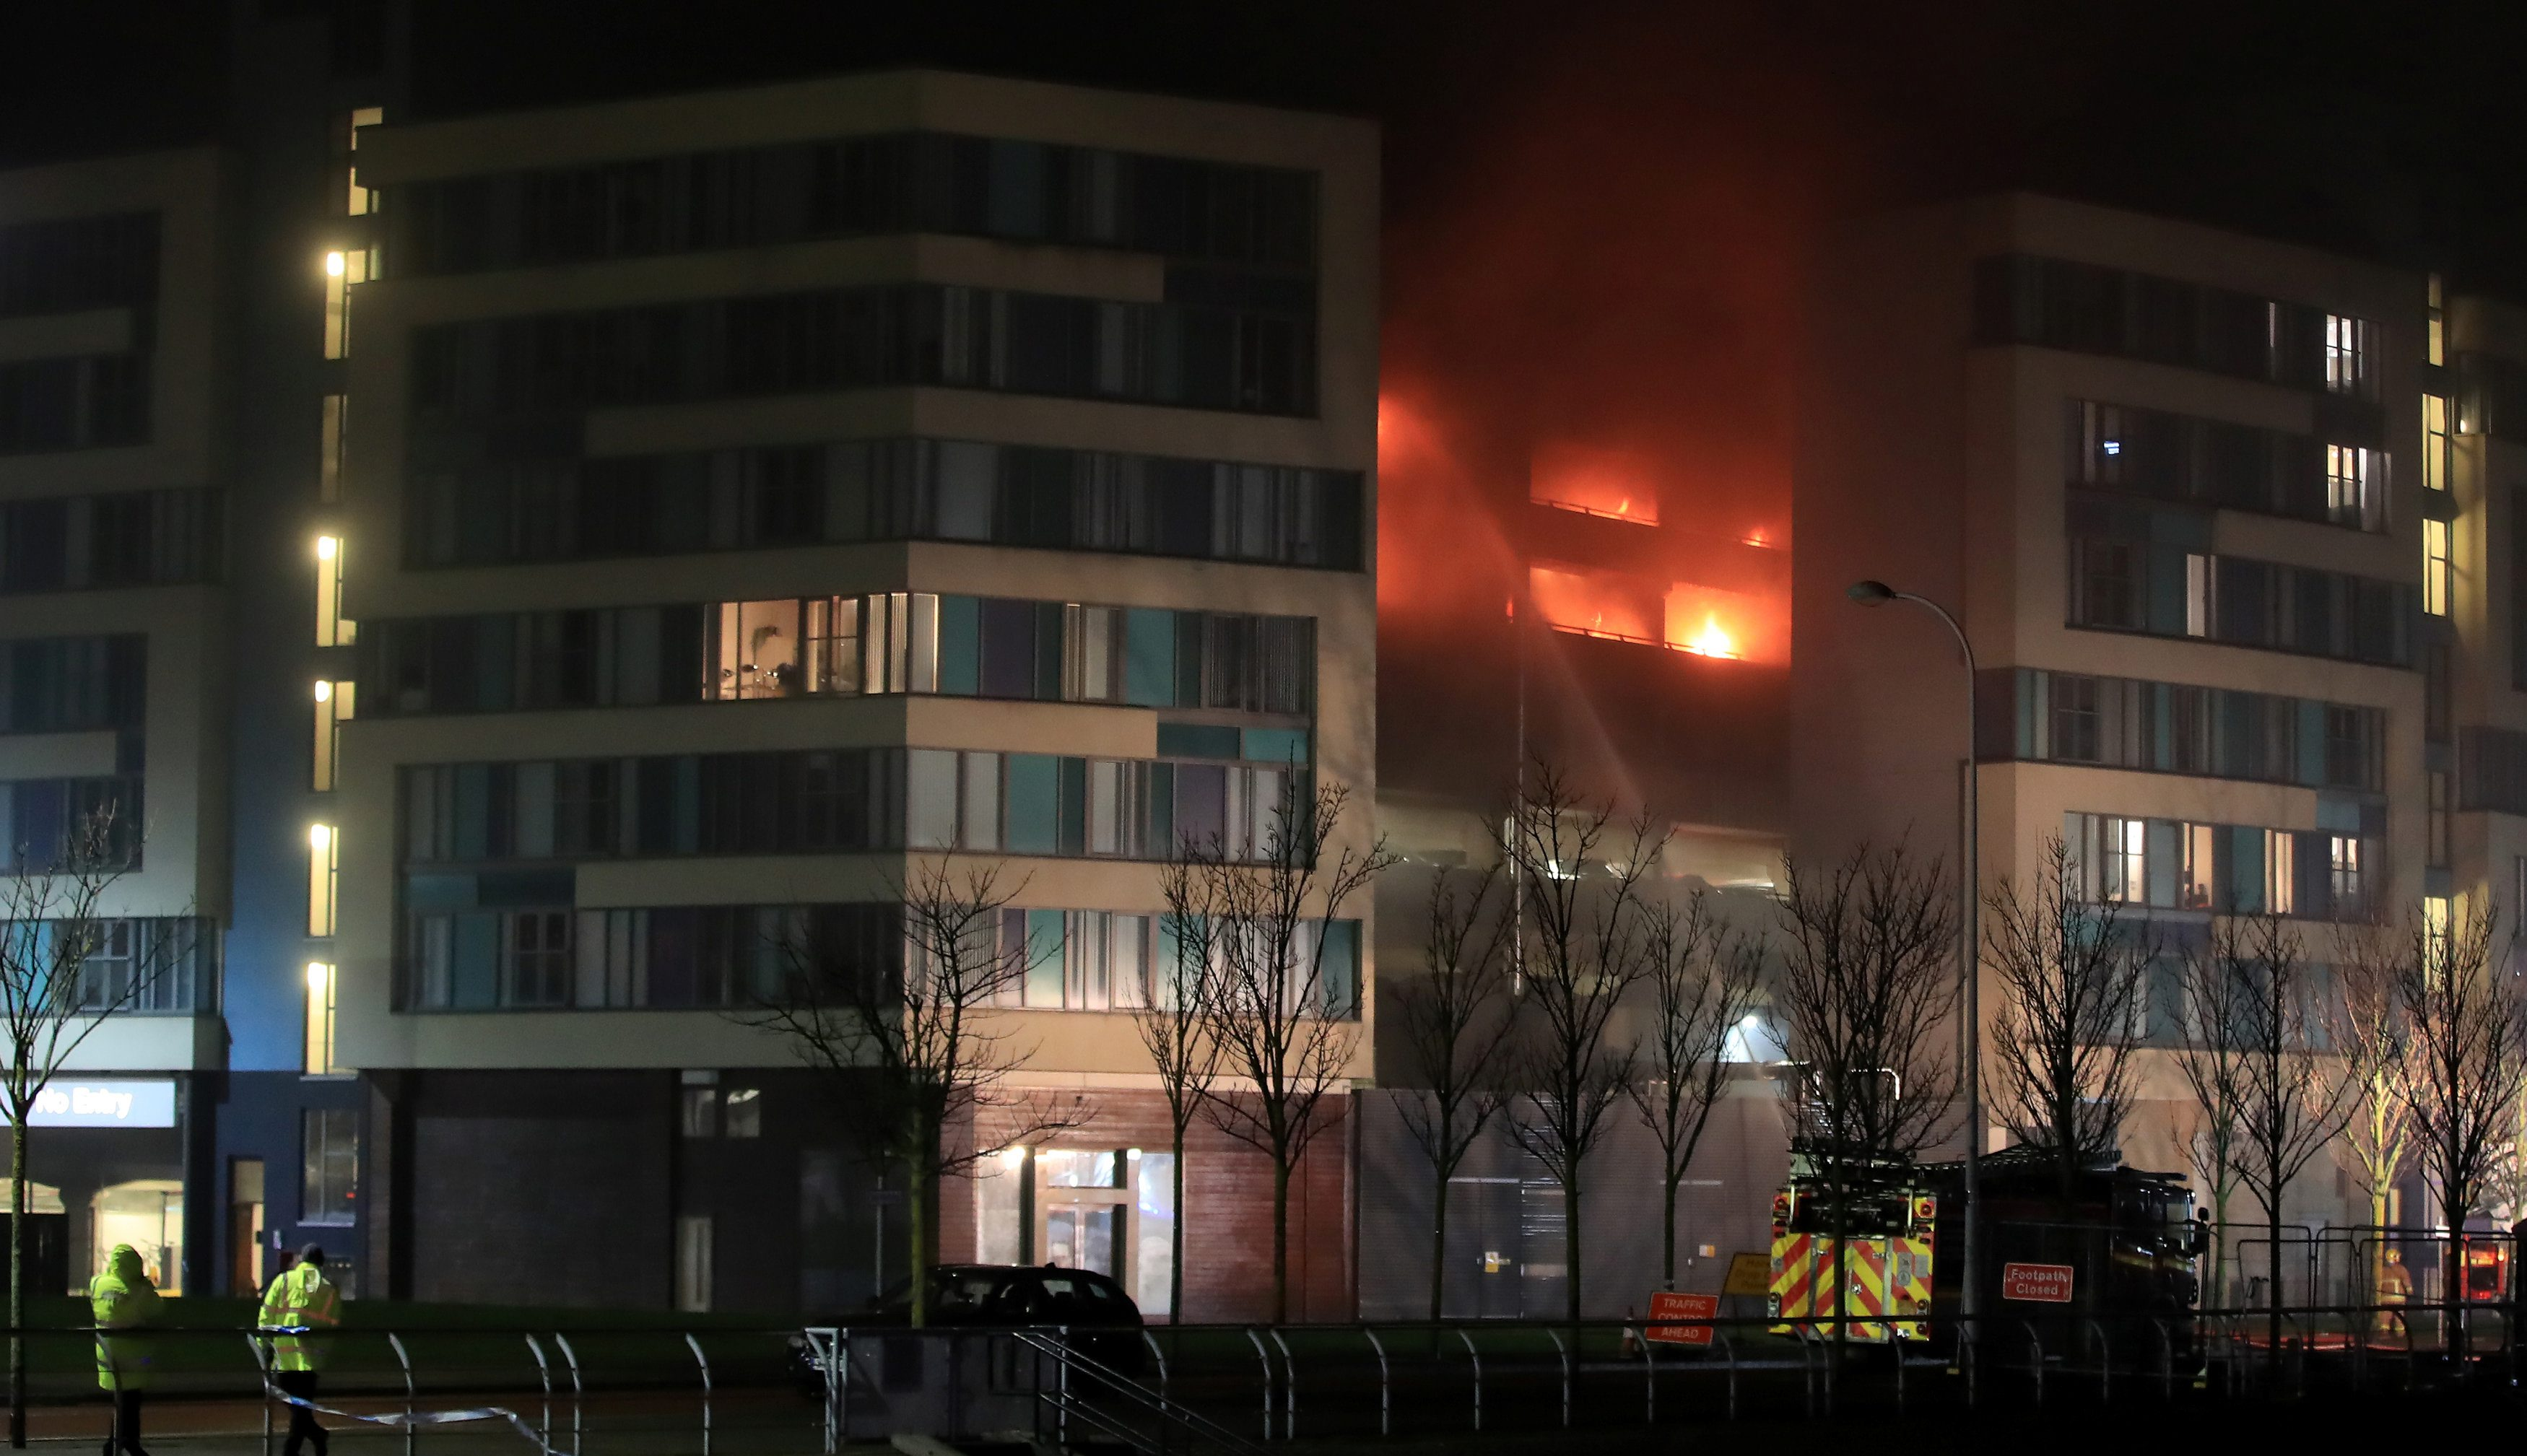 Firefighters tackle a fire during a serious blaze in a multi-storey car park in Liverpool, Britain, December 31, 2017. REUTERS/Phil Noble